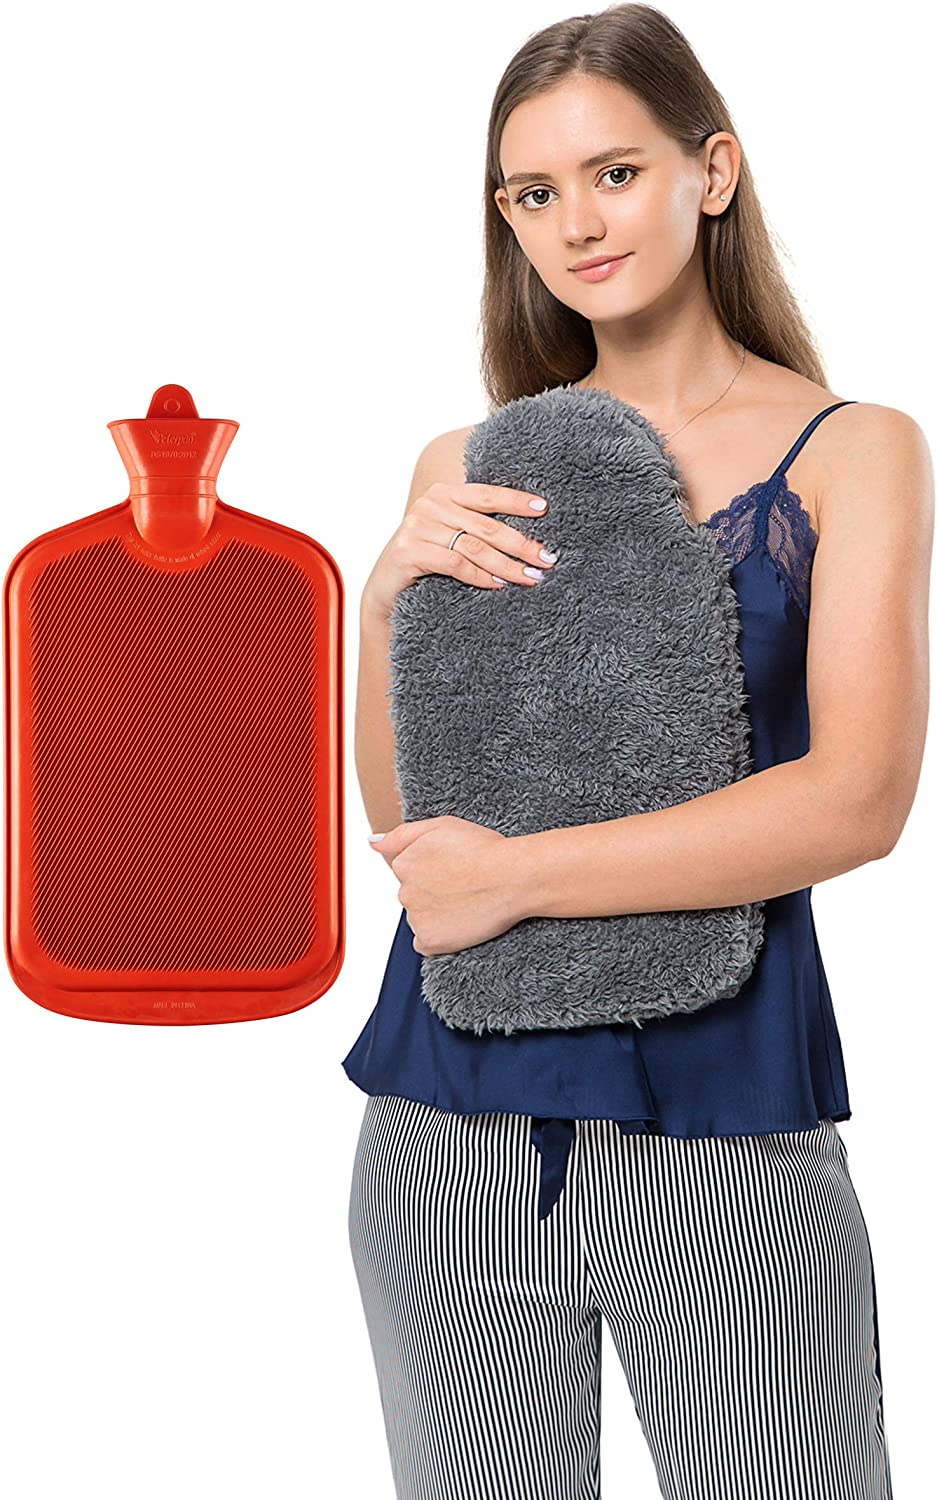 Peterpan Teddy Charcoal Rubber Hot Water Bottle Cover, Size: XXX-Large, Hot Water Bag for Pain Relief, BPA & Phthalates Free,100 Fl Oz Capacity, Gray : Health & Household